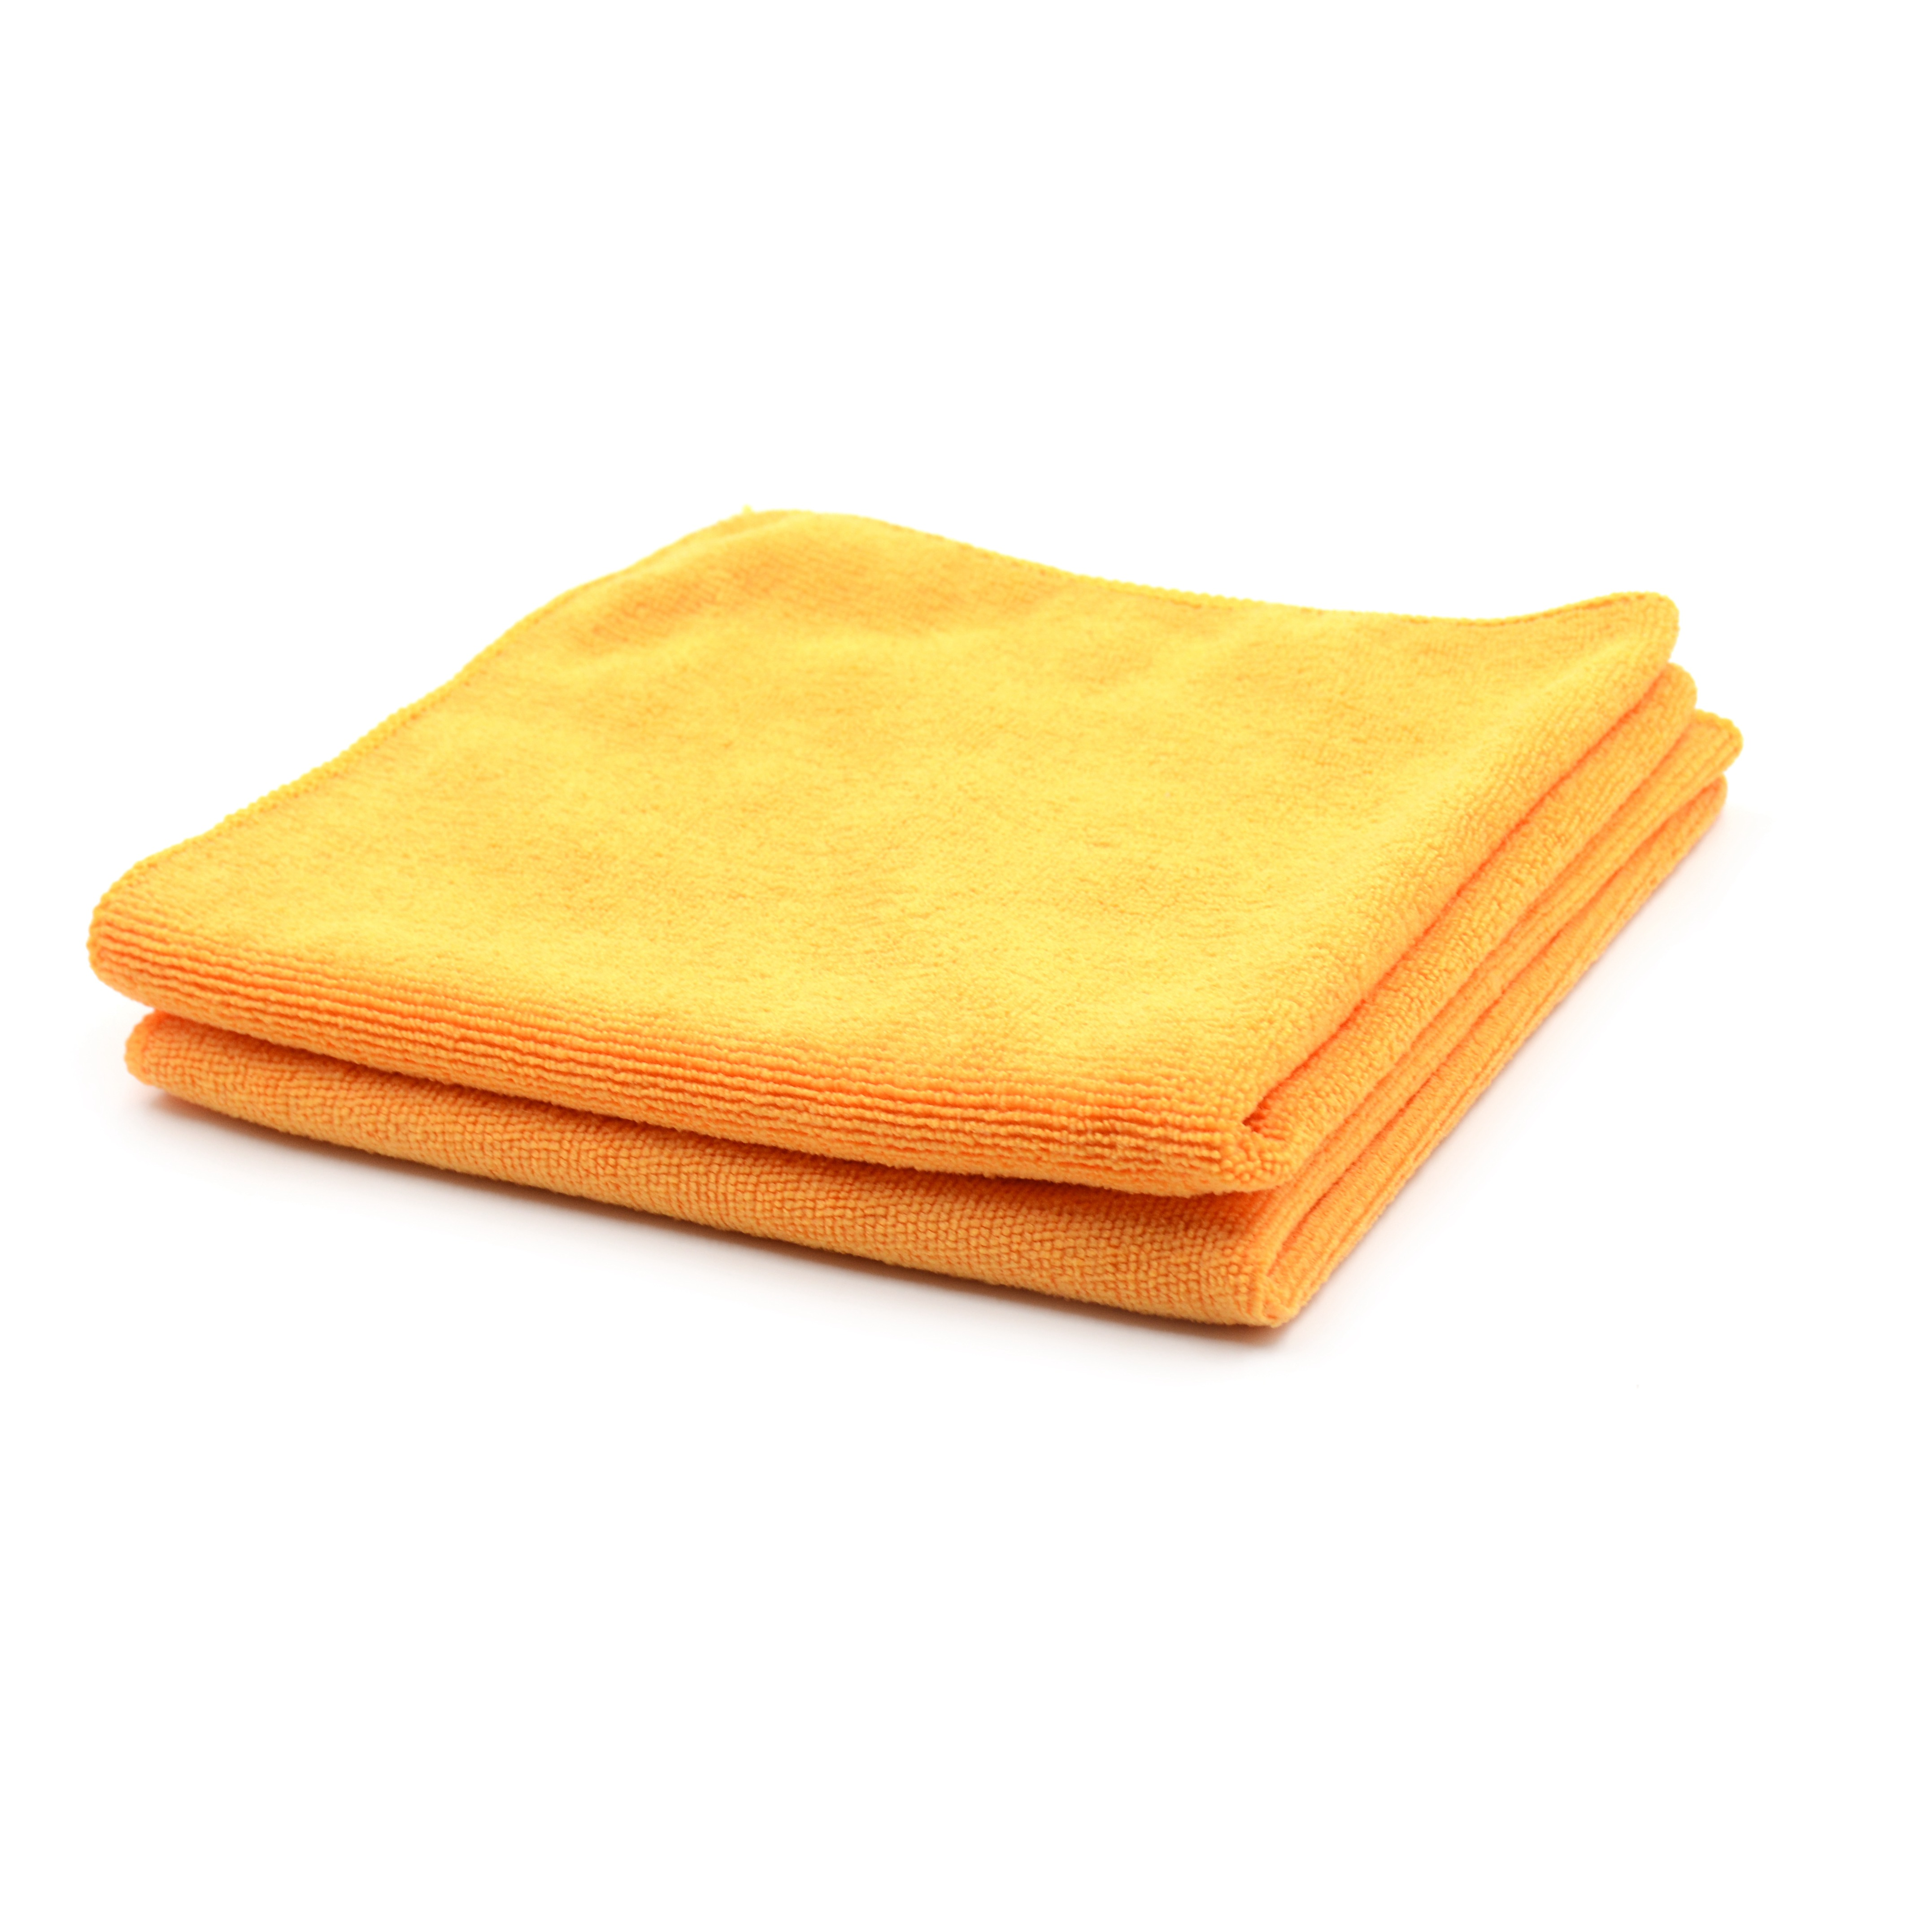 High quality soft 3M cloth 30*30cm household cleaning pearl cloth